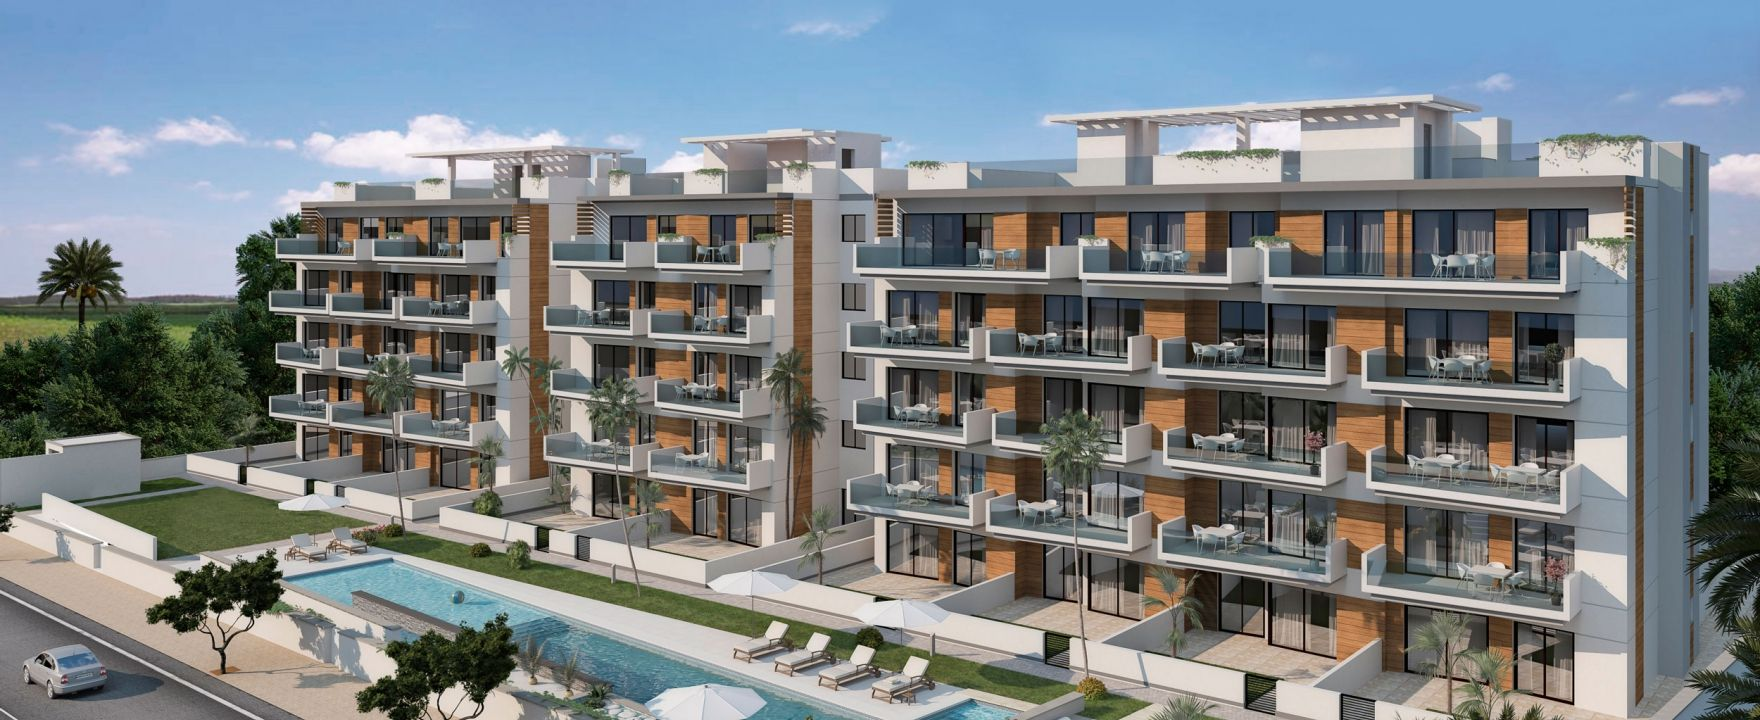 Apartments in Guardamar 2